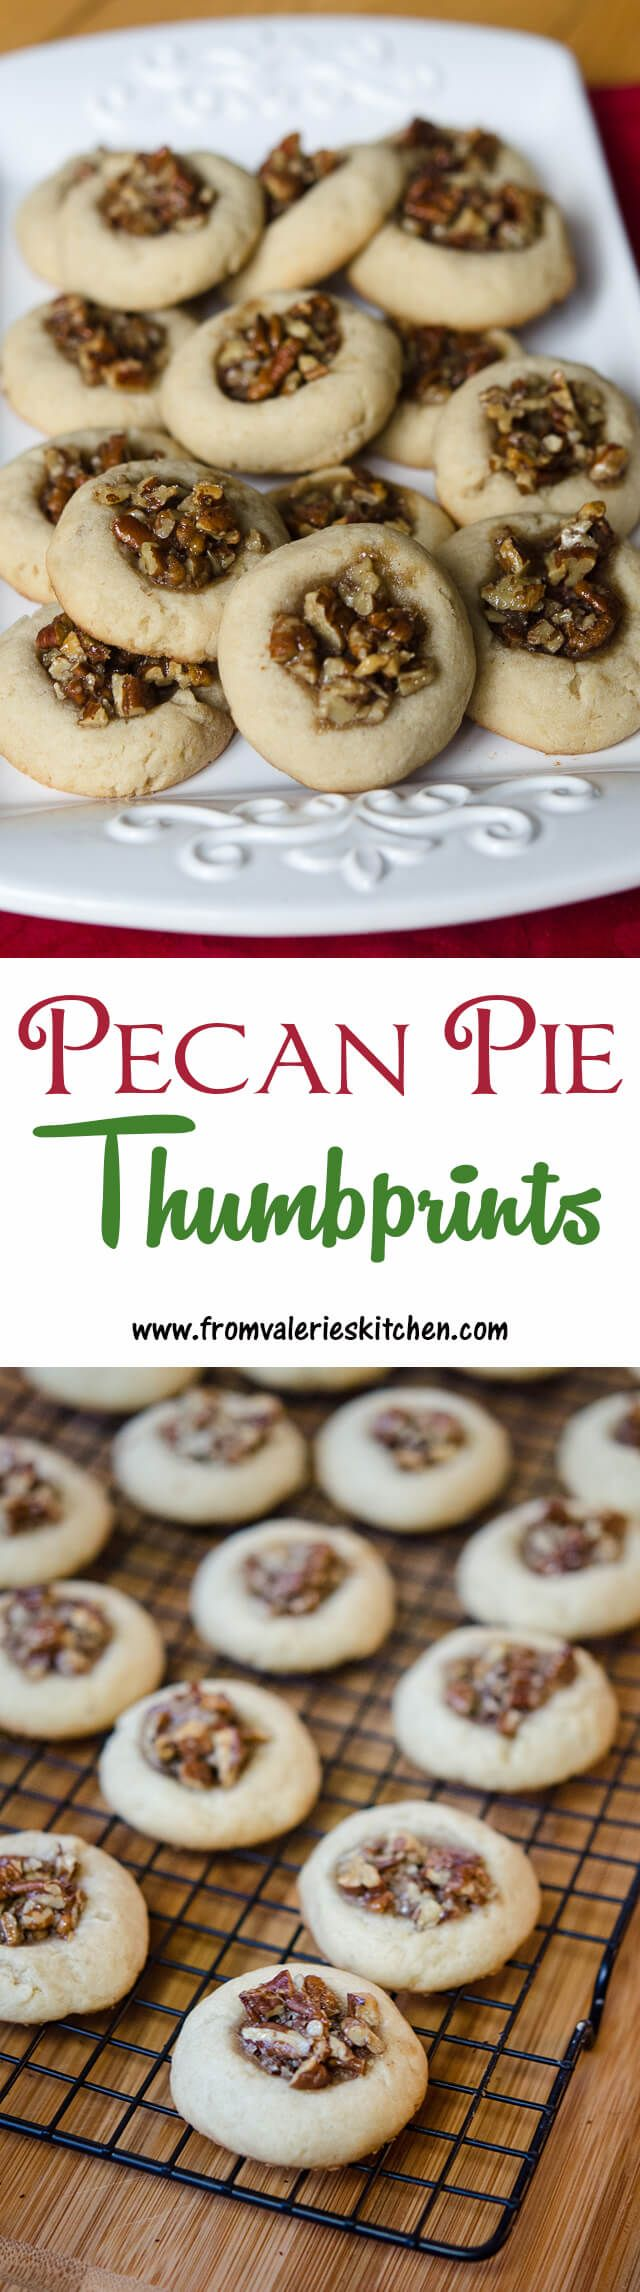 All the goodness of pecan pie in cookie form. A great addition to your Christmas cookie tray! ~ http://www.fromvalerieskitchen.com